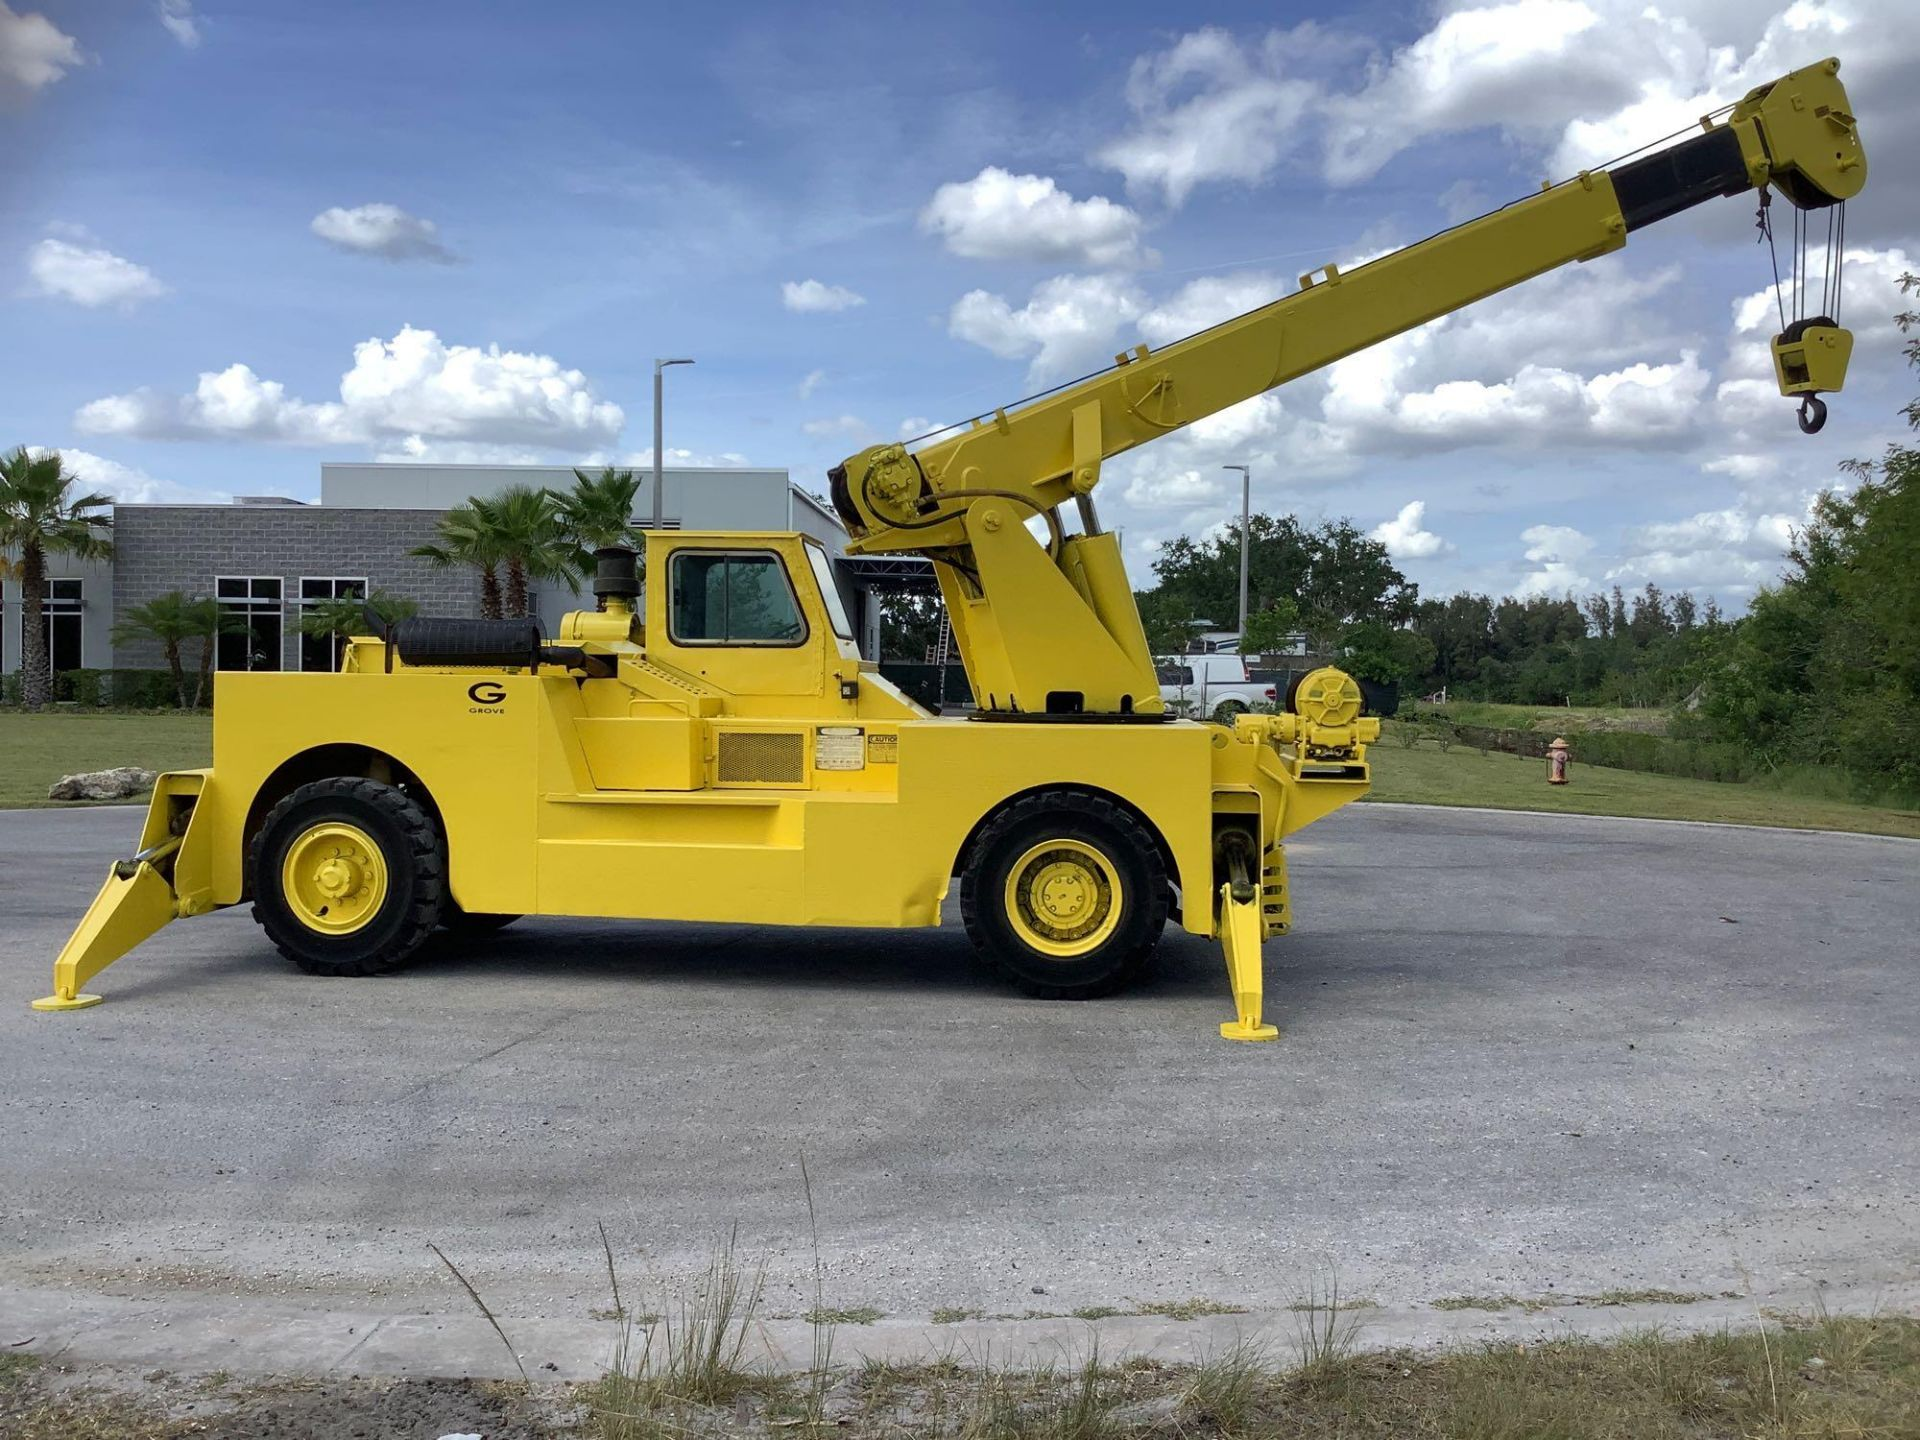 GROVE TRUCK CRANE MODEL IND1012, HYDRAULIC, TELESCOPIC, DIESEL,OUTRIGGER, RUNS AND OPERATES - Image 6 of 18